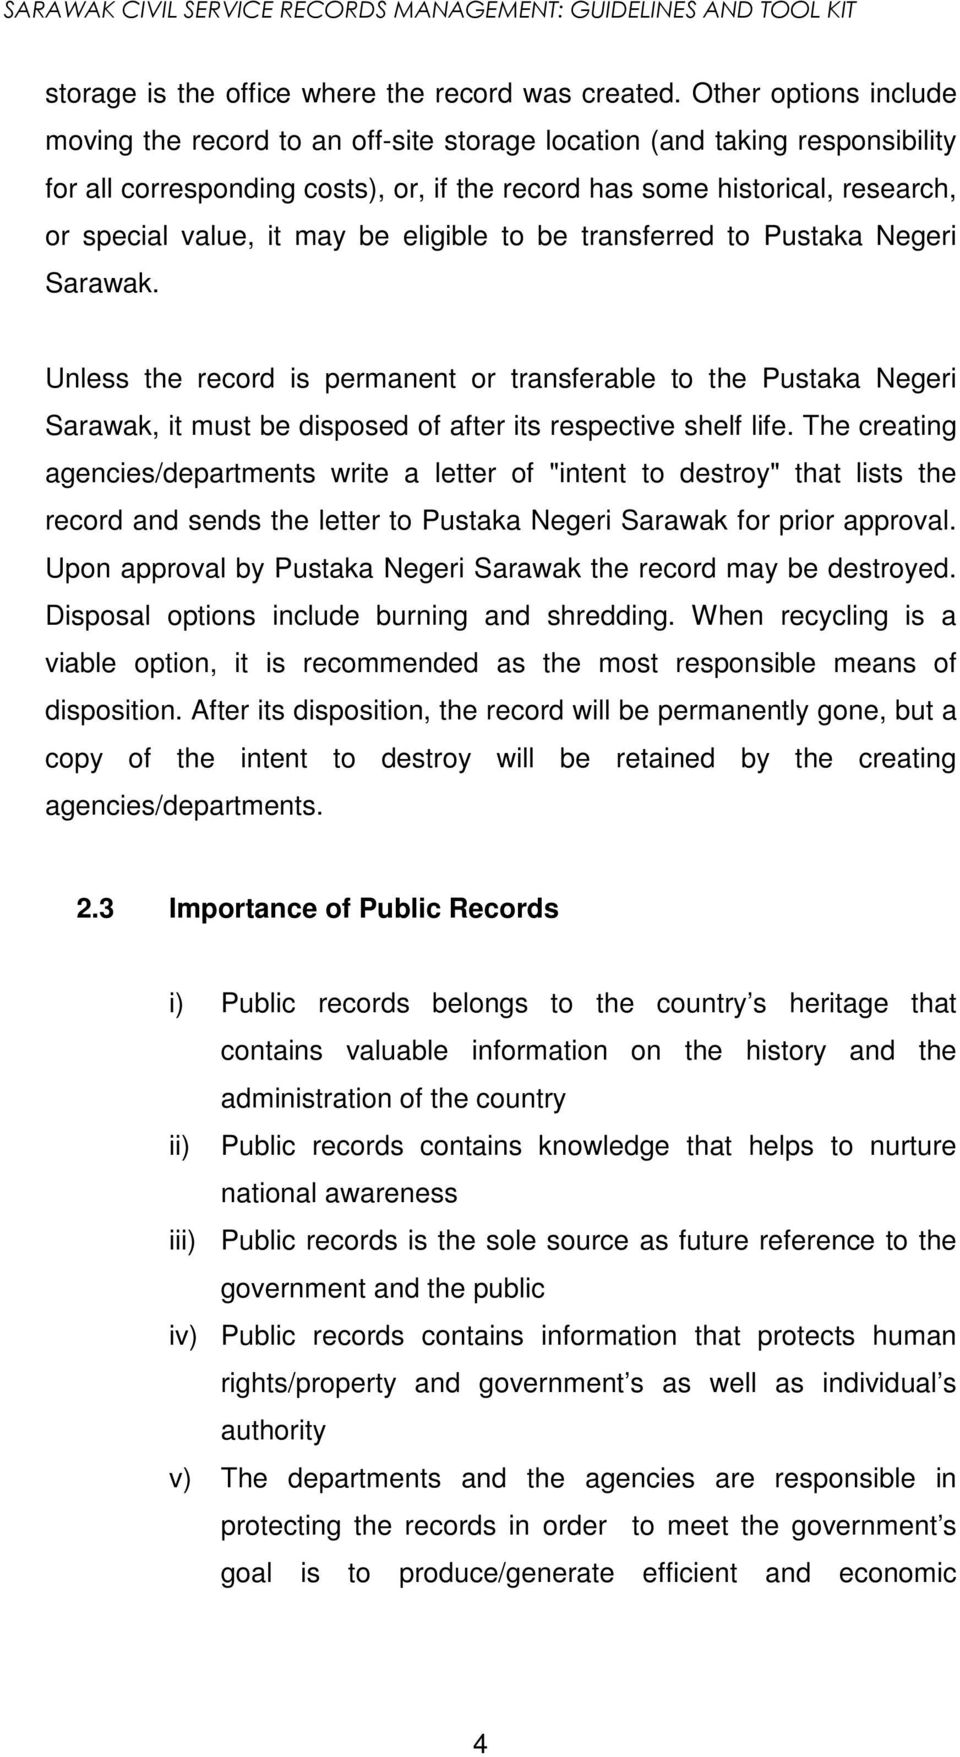 may be eligible to be transferred to Pustaka Negeri Sarawak. Unless the record is permanent or transferable to the Pustaka Negeri Sarawak, it must be disposed of after its respective shelf life.